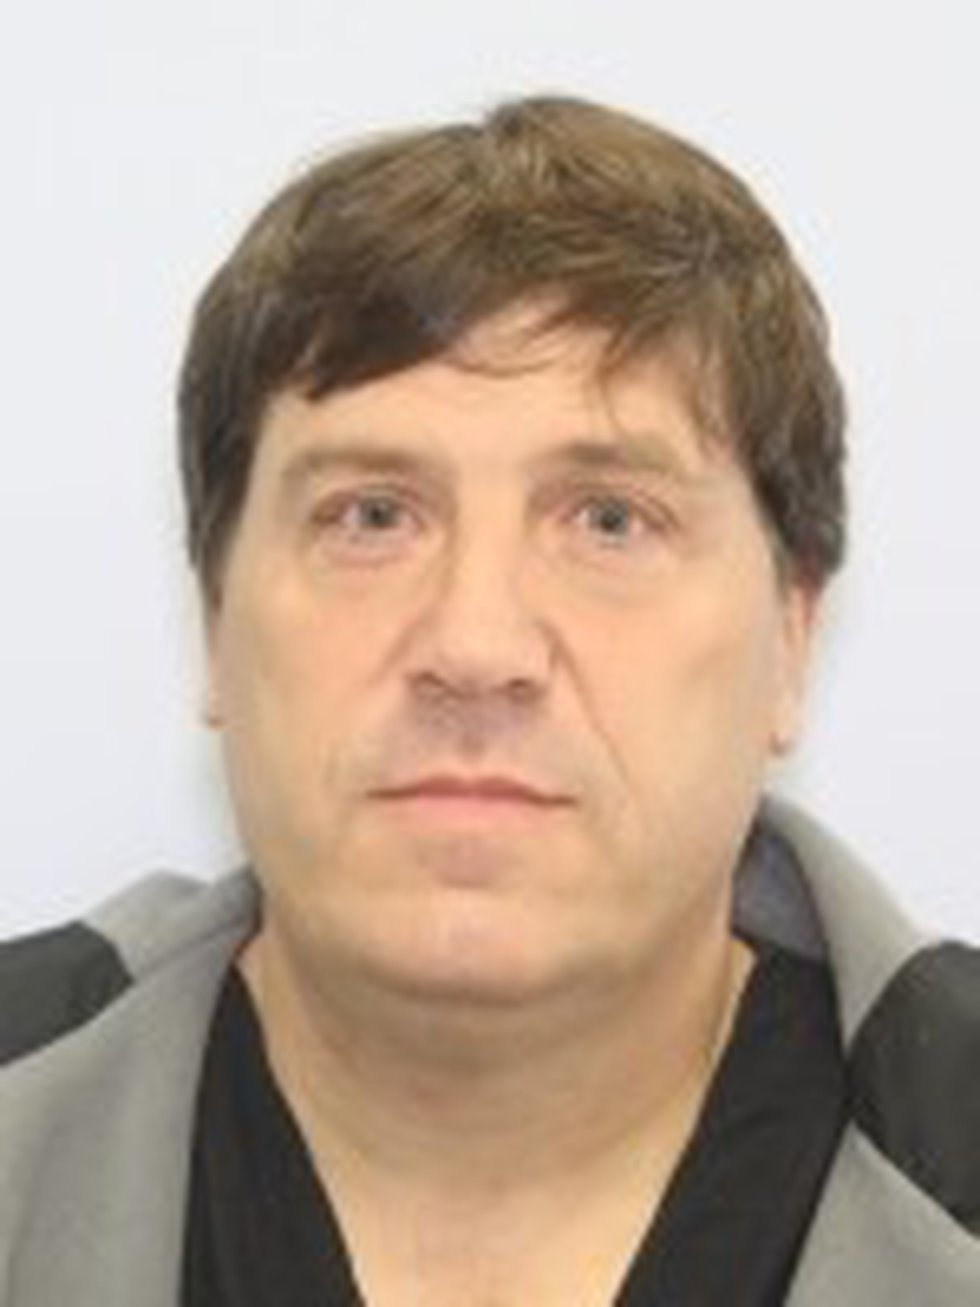 Michael Magoline, 53, of Akron was arrested for answering an on-line advertisement offering...